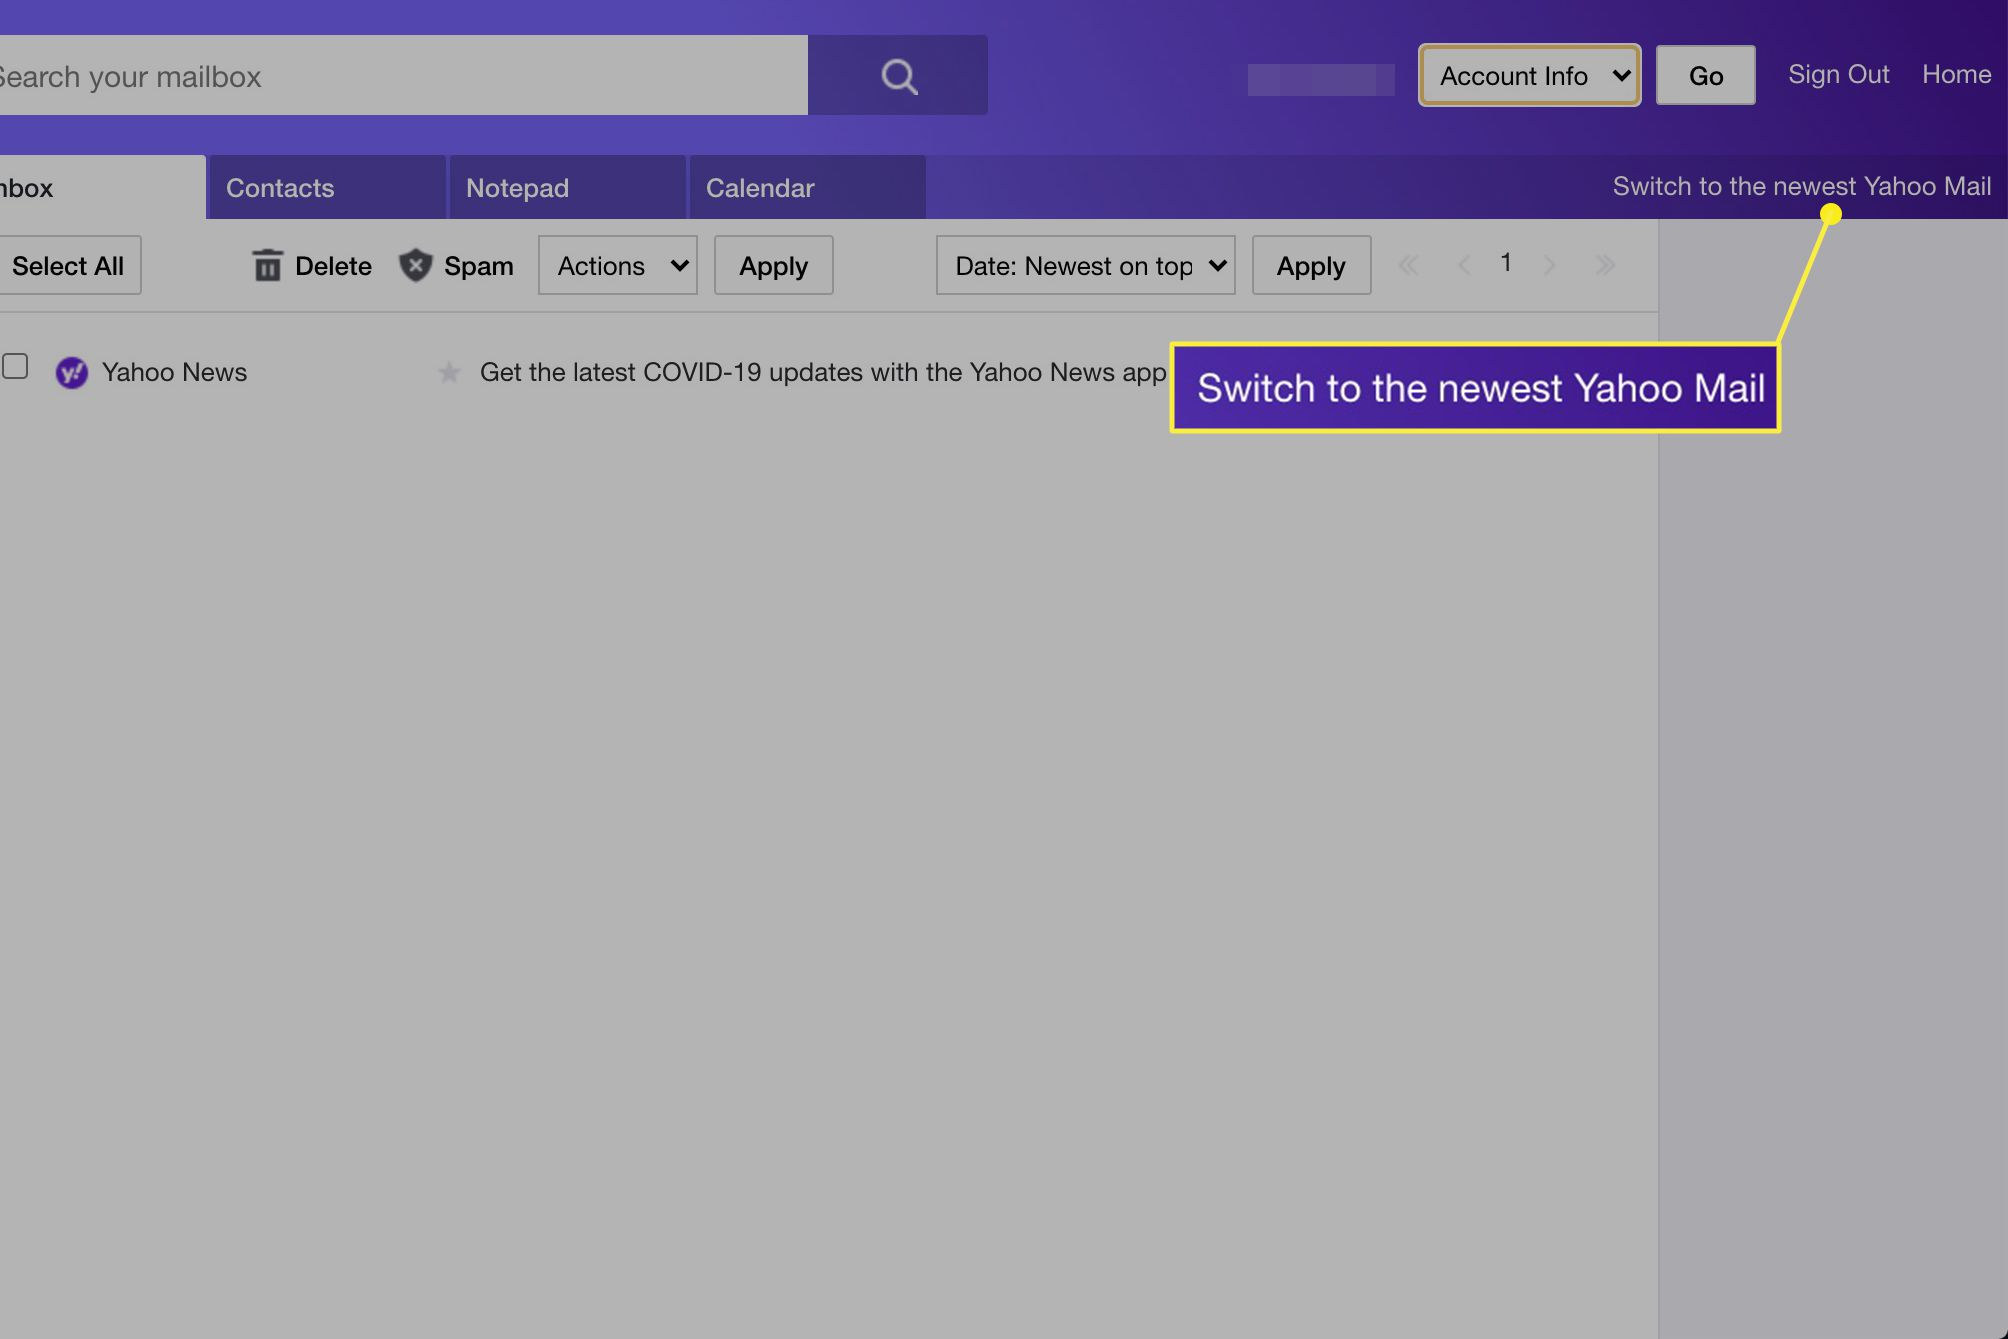 Yahoo Basic with Switch to the newest Yahoo mail highlighted